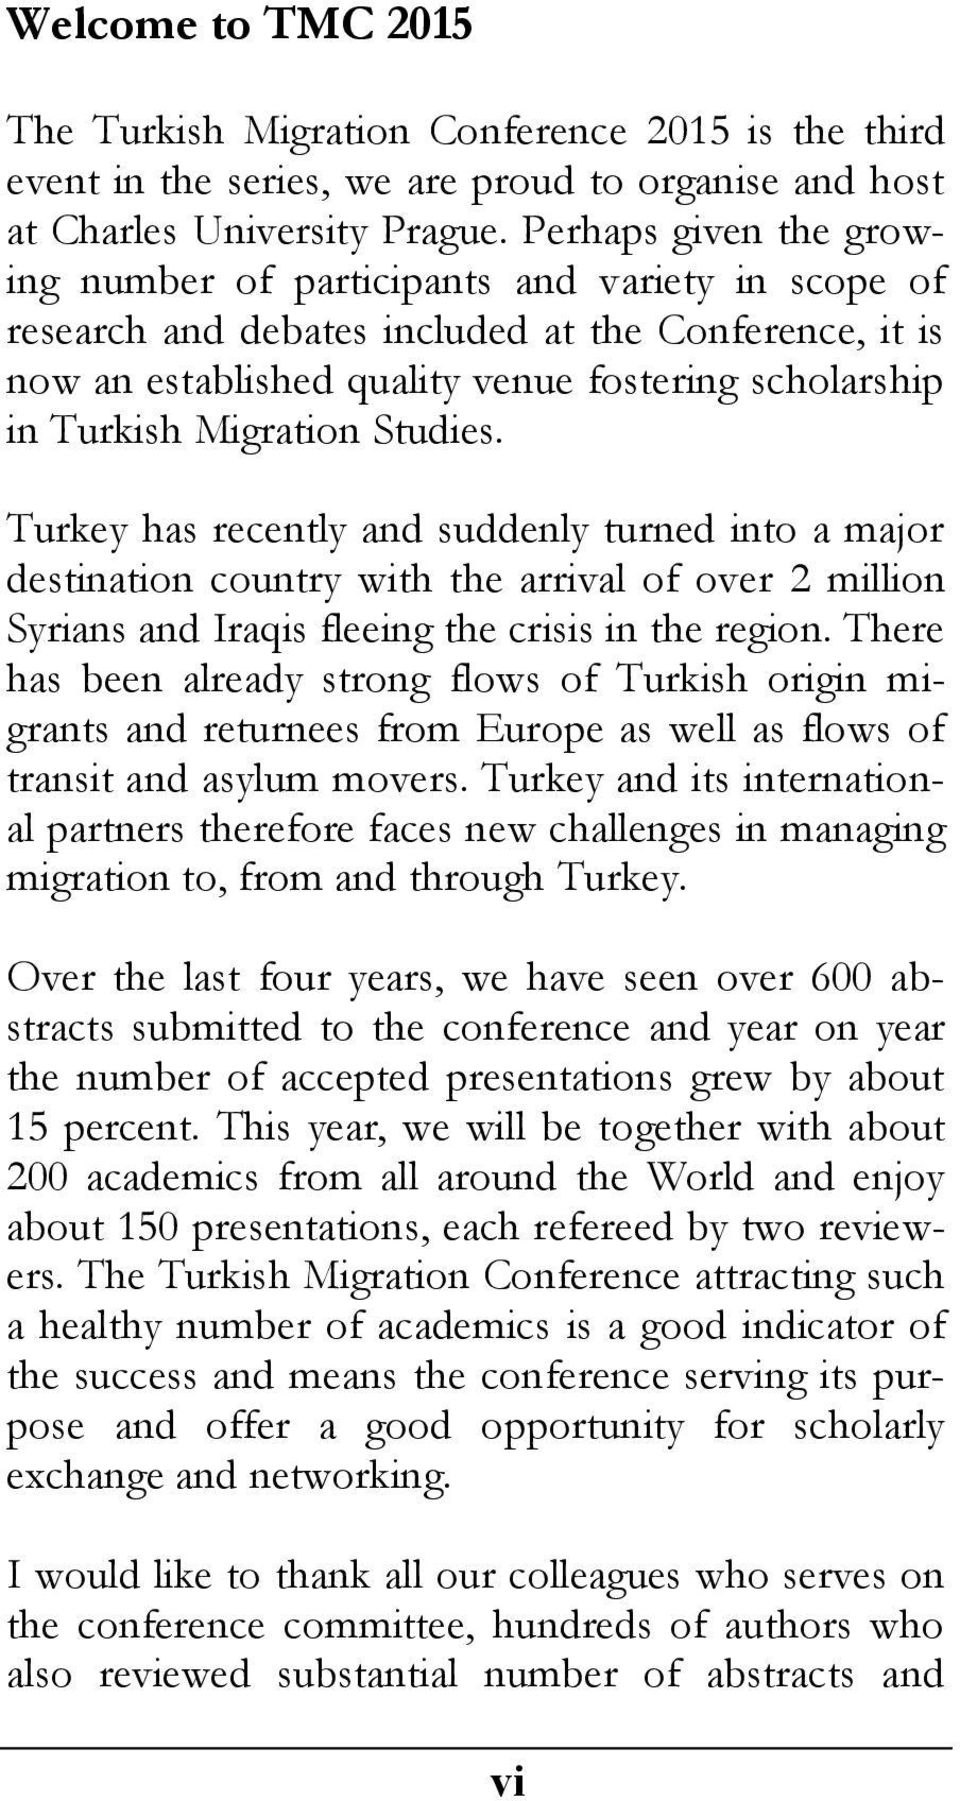 Migration Studies. Turkey has recently and suddenly turned into a major destination country with the arrival of over 2 million Syrians and Iraqis fleeing the crisis in the region.